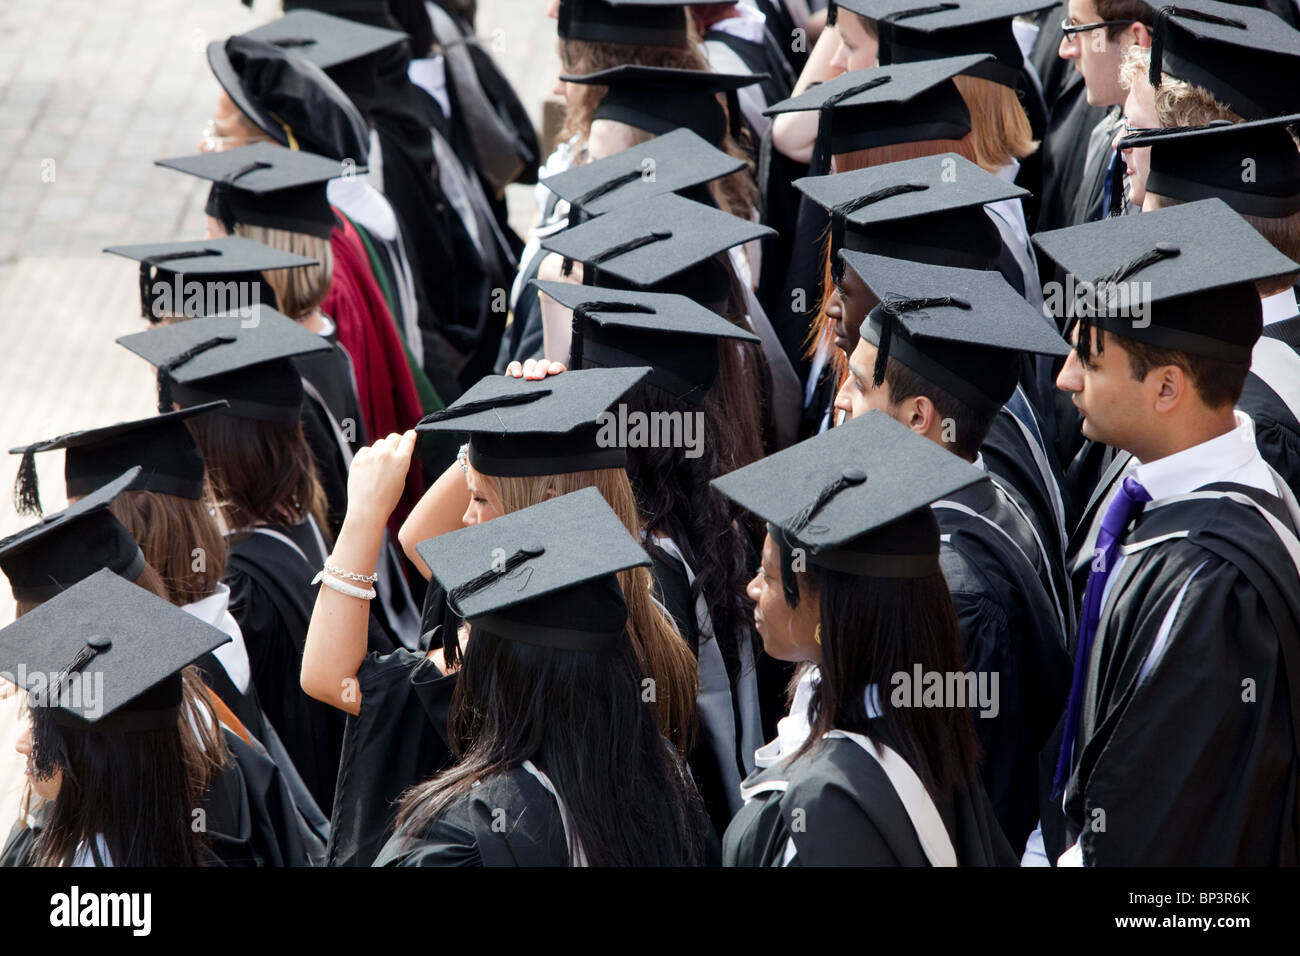 Graduates wait to be photographed after a degree ceremony at Birmingham University in the UK - Stock Image